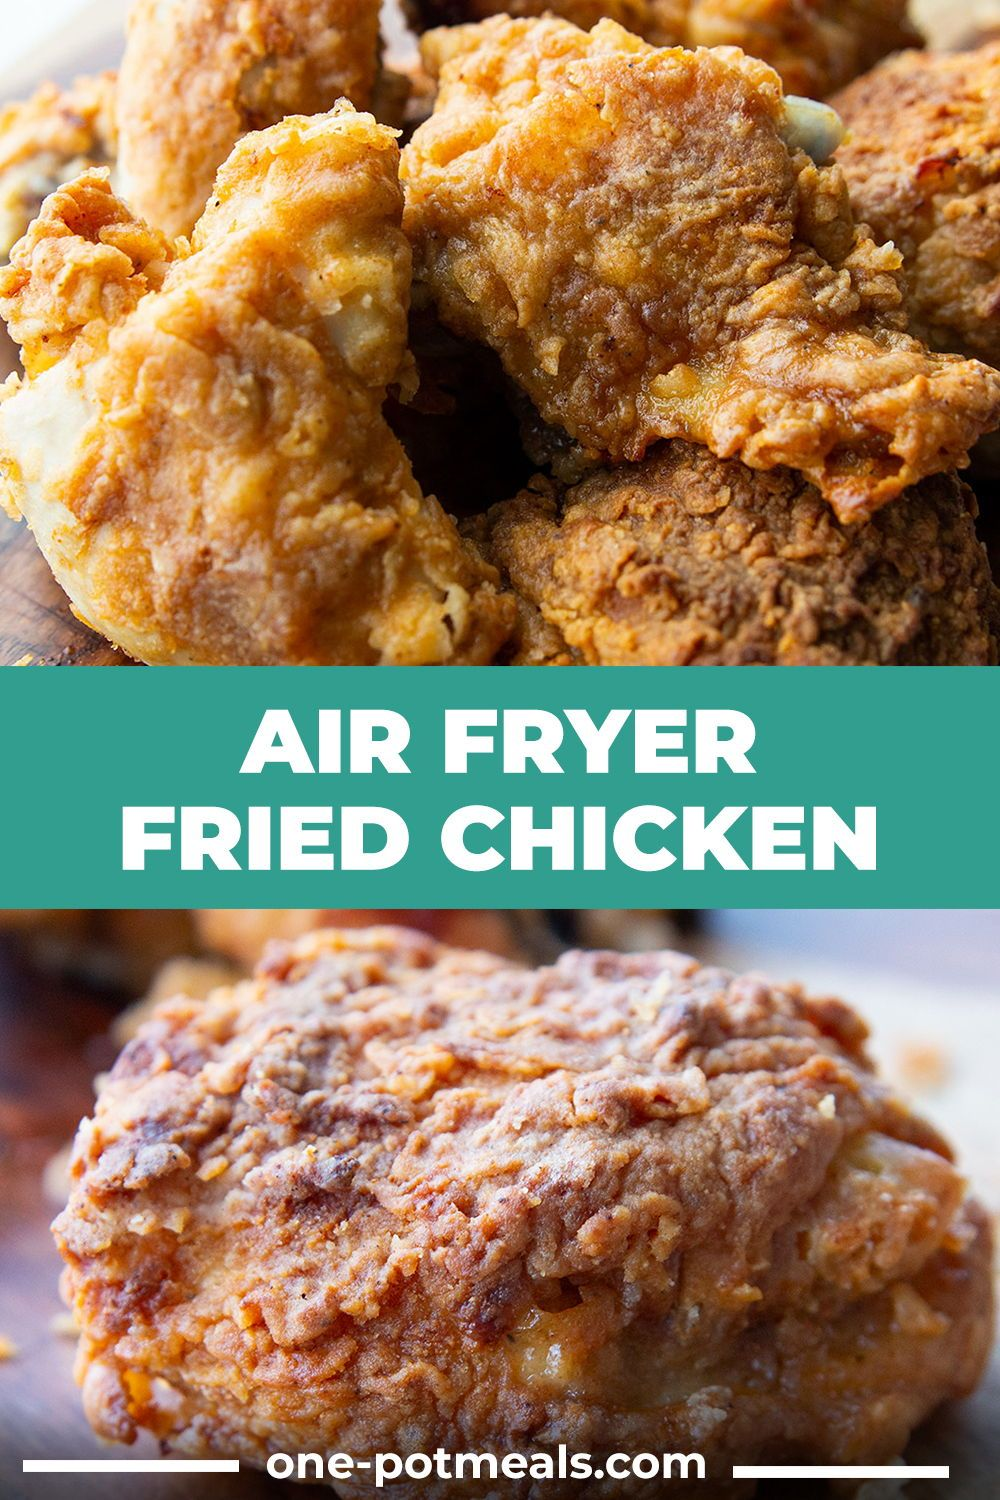 This Air Fryer Fried Chicken Uses Little To No Oil And Has A Crispy Golden Coating Surrounding